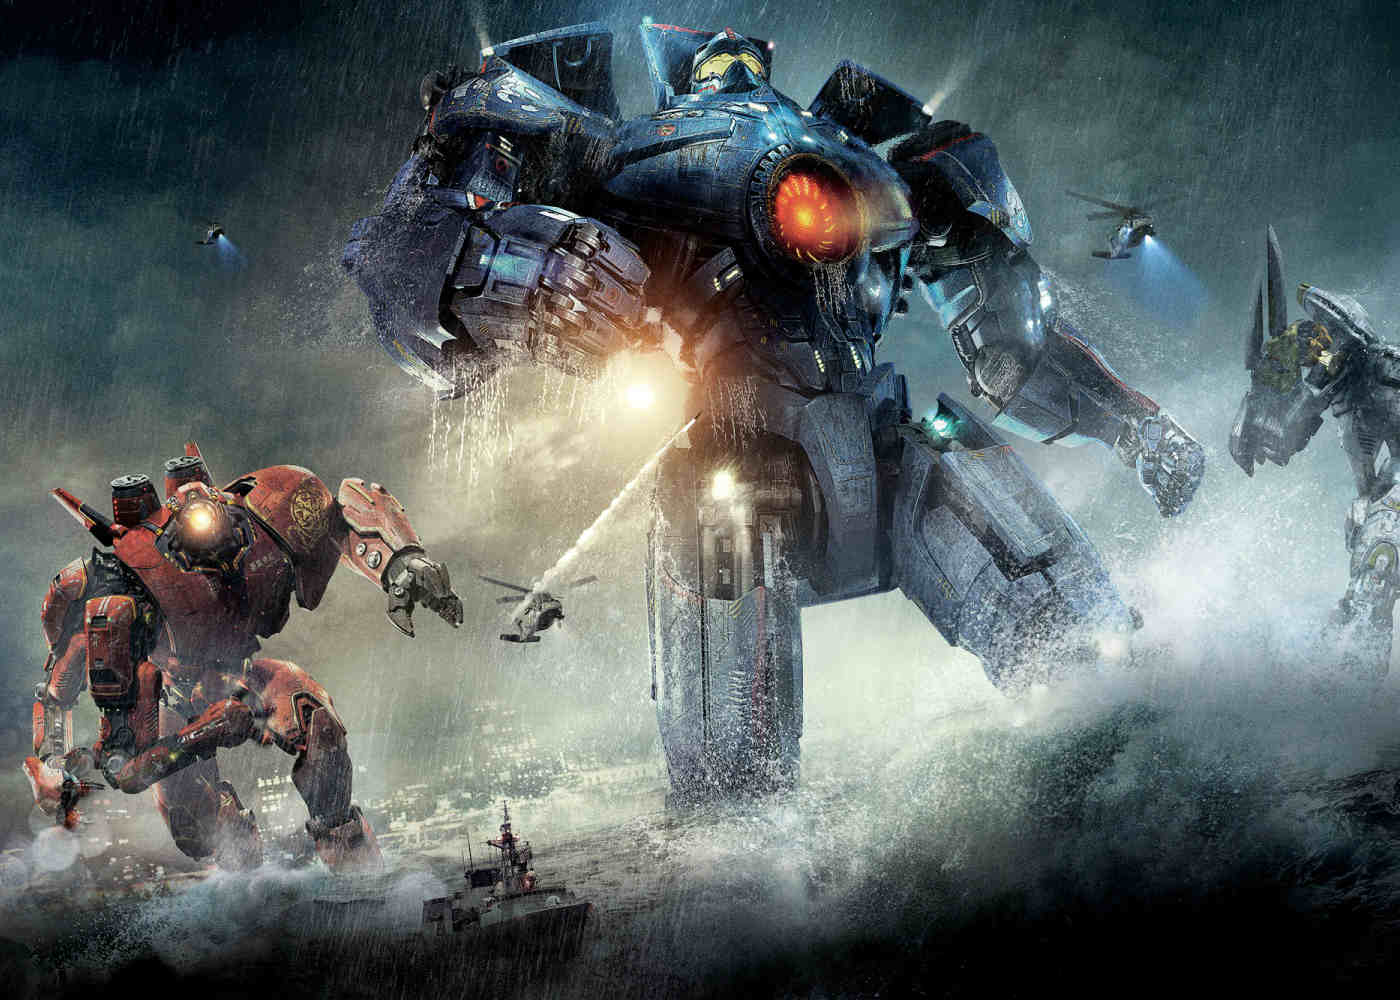 Pacific Rim Anime Coming to Netflix in 2020